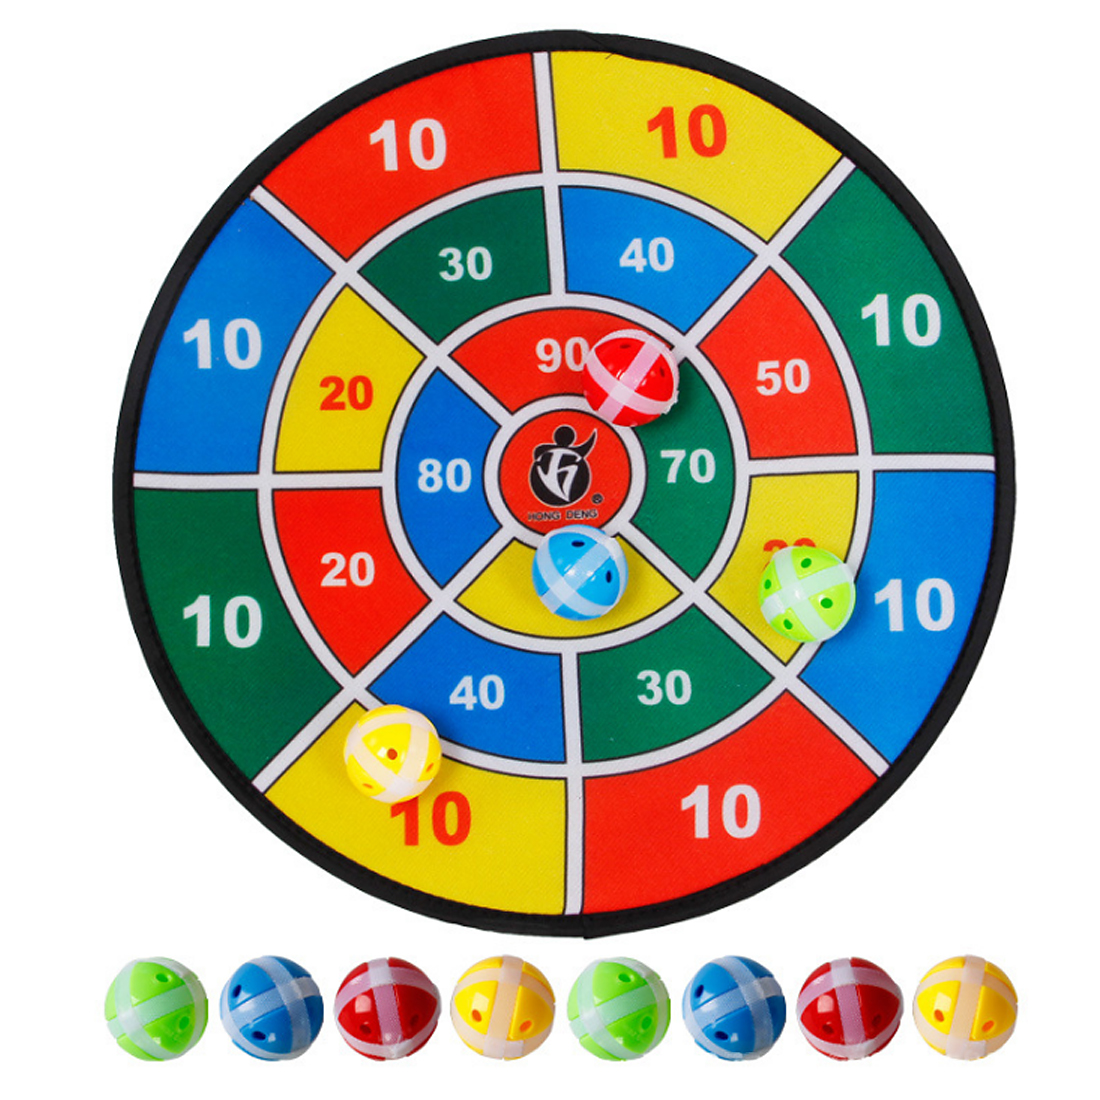 Children Indoor Outdoor Sport Toys Parent-child Game Safety Flannelette Dart Board With Balls Educational Toys cool educational toys dump monkey falling monkeys board game kids birthday gifts family interaction board game toys for children